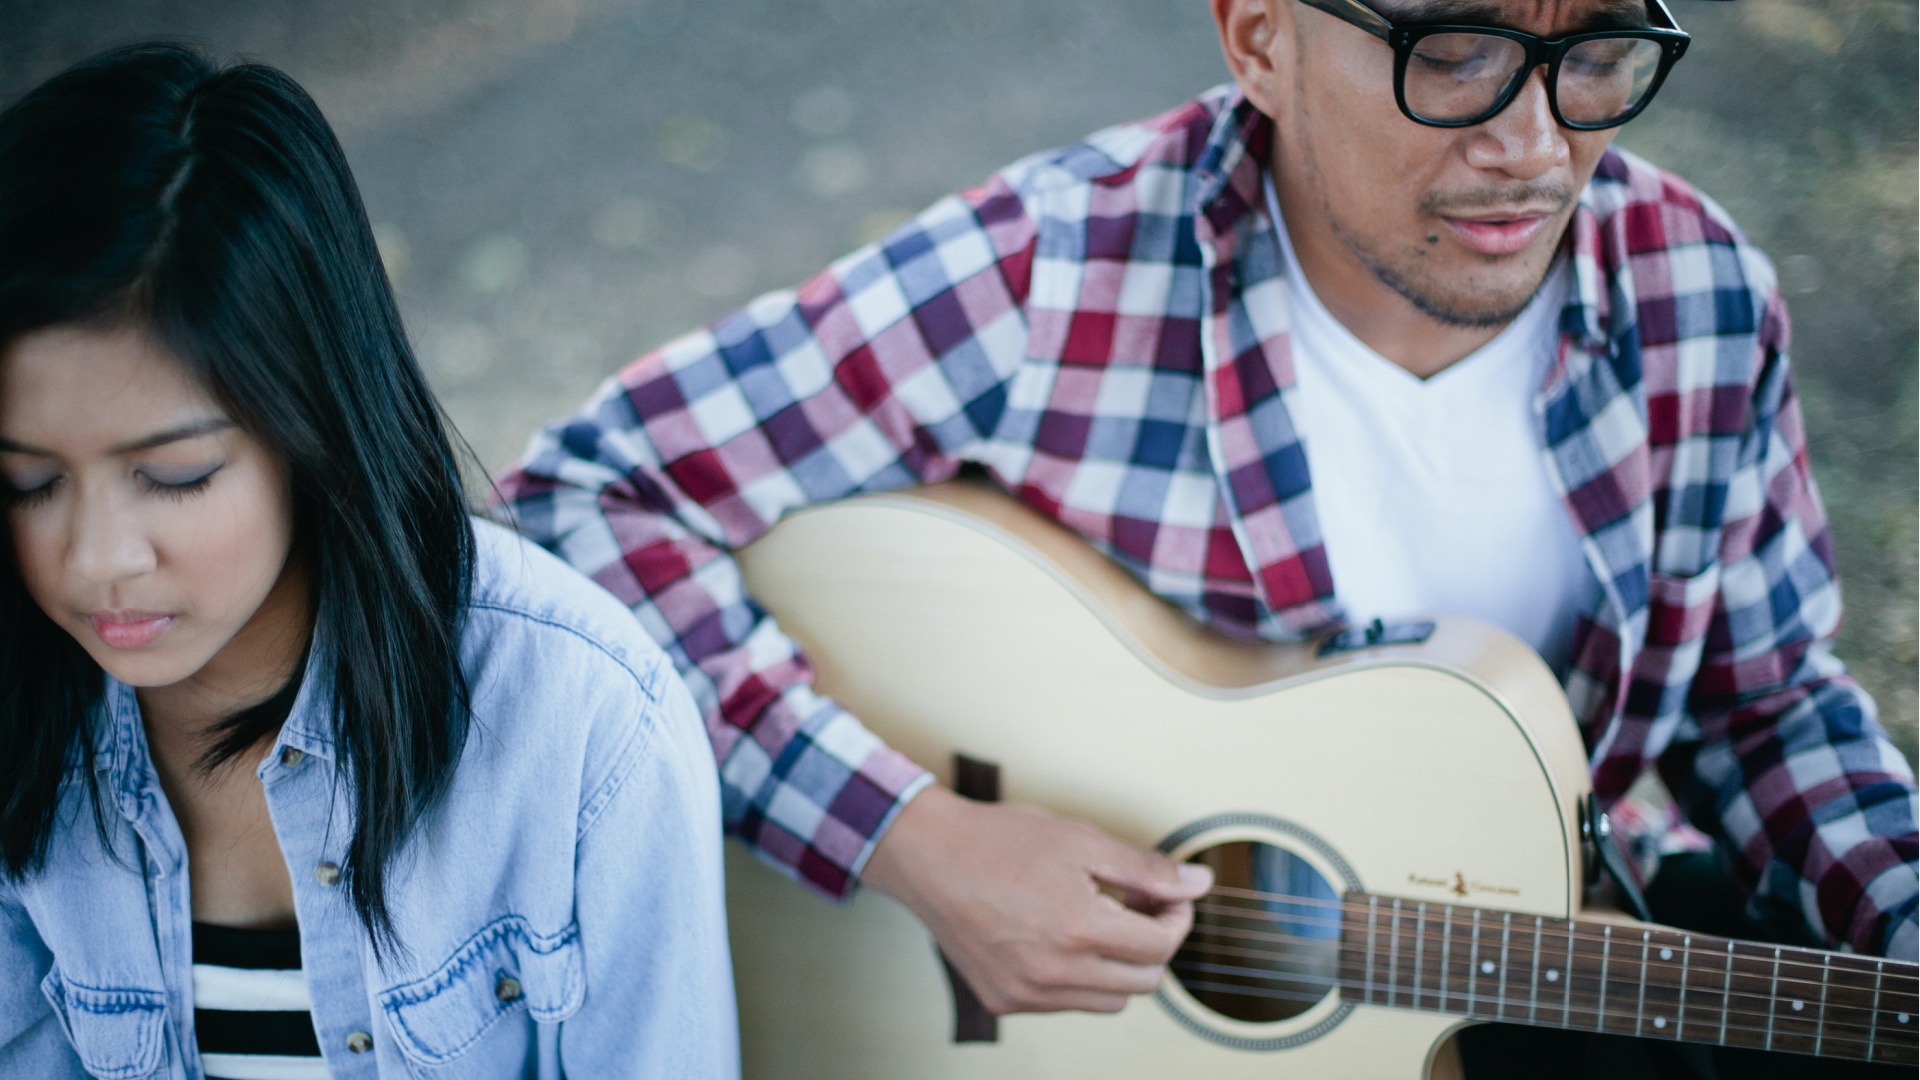 Man and woman singing together with guitar